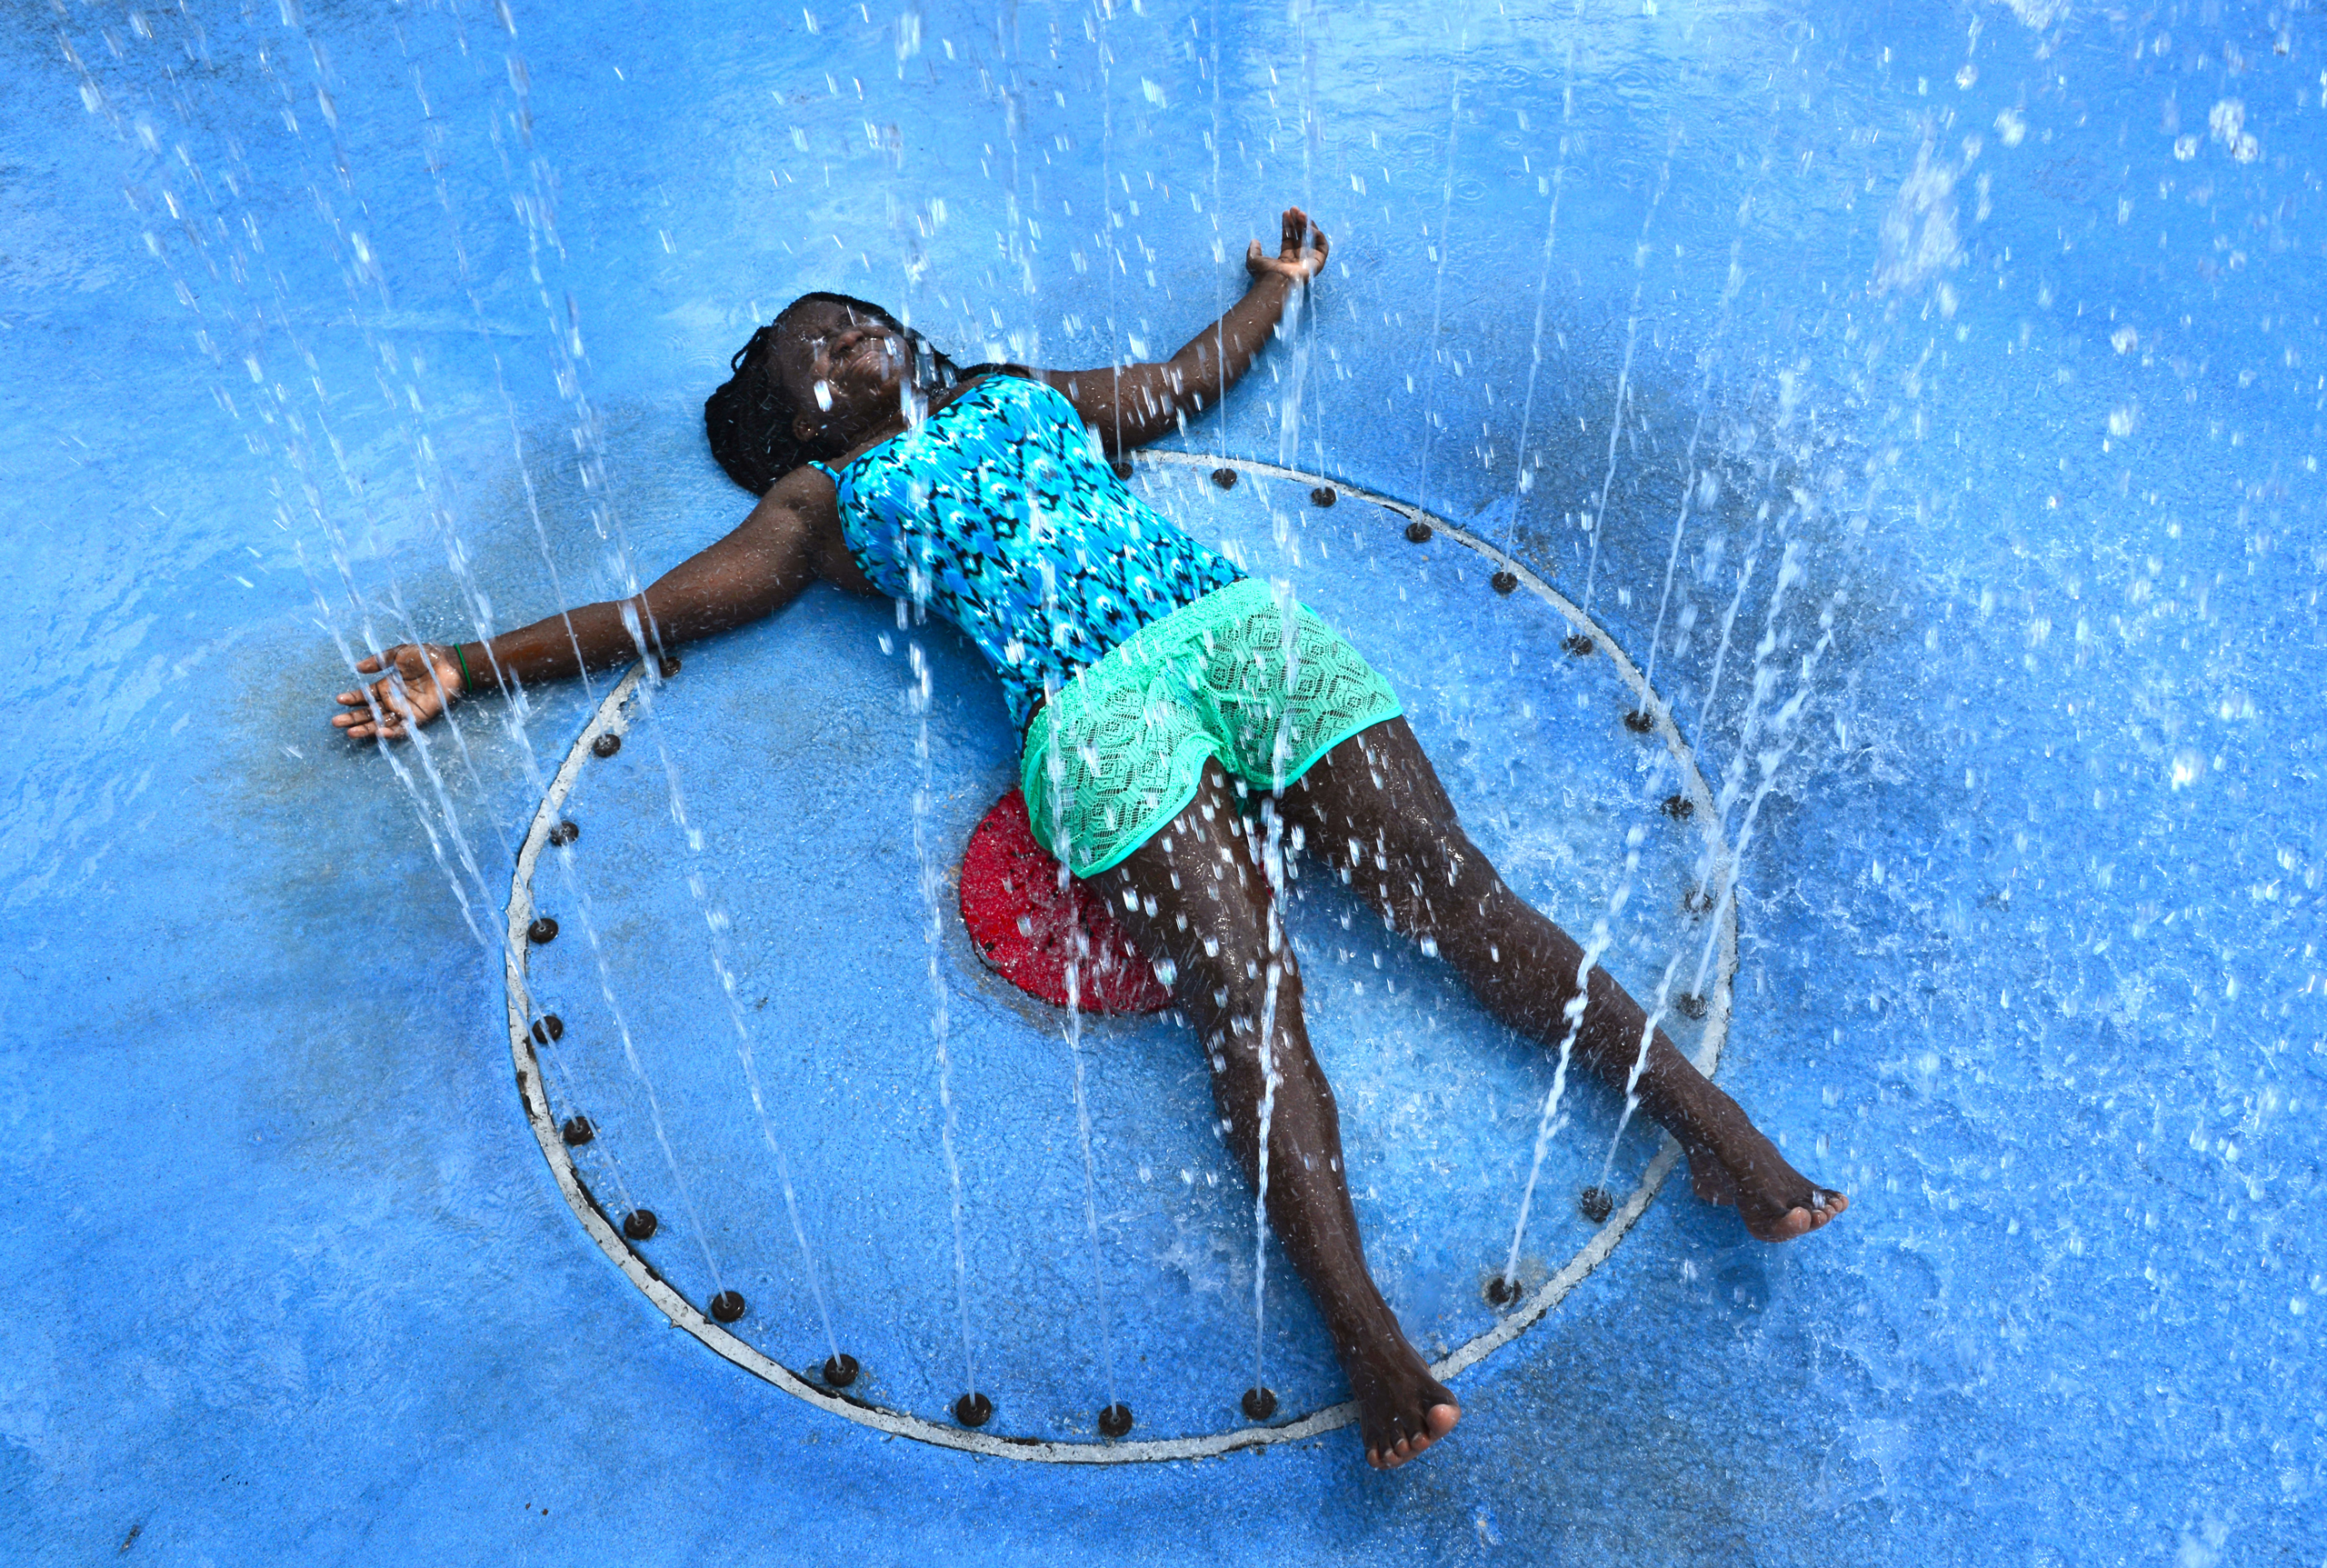 With the temperature in the mid 90's, Carliya Dove, 12, soaks up the full effects of the play fountain in Julius Guinyard Park to beat the afternoon heat in Jacksonville, Fla., on July 20, 2016.